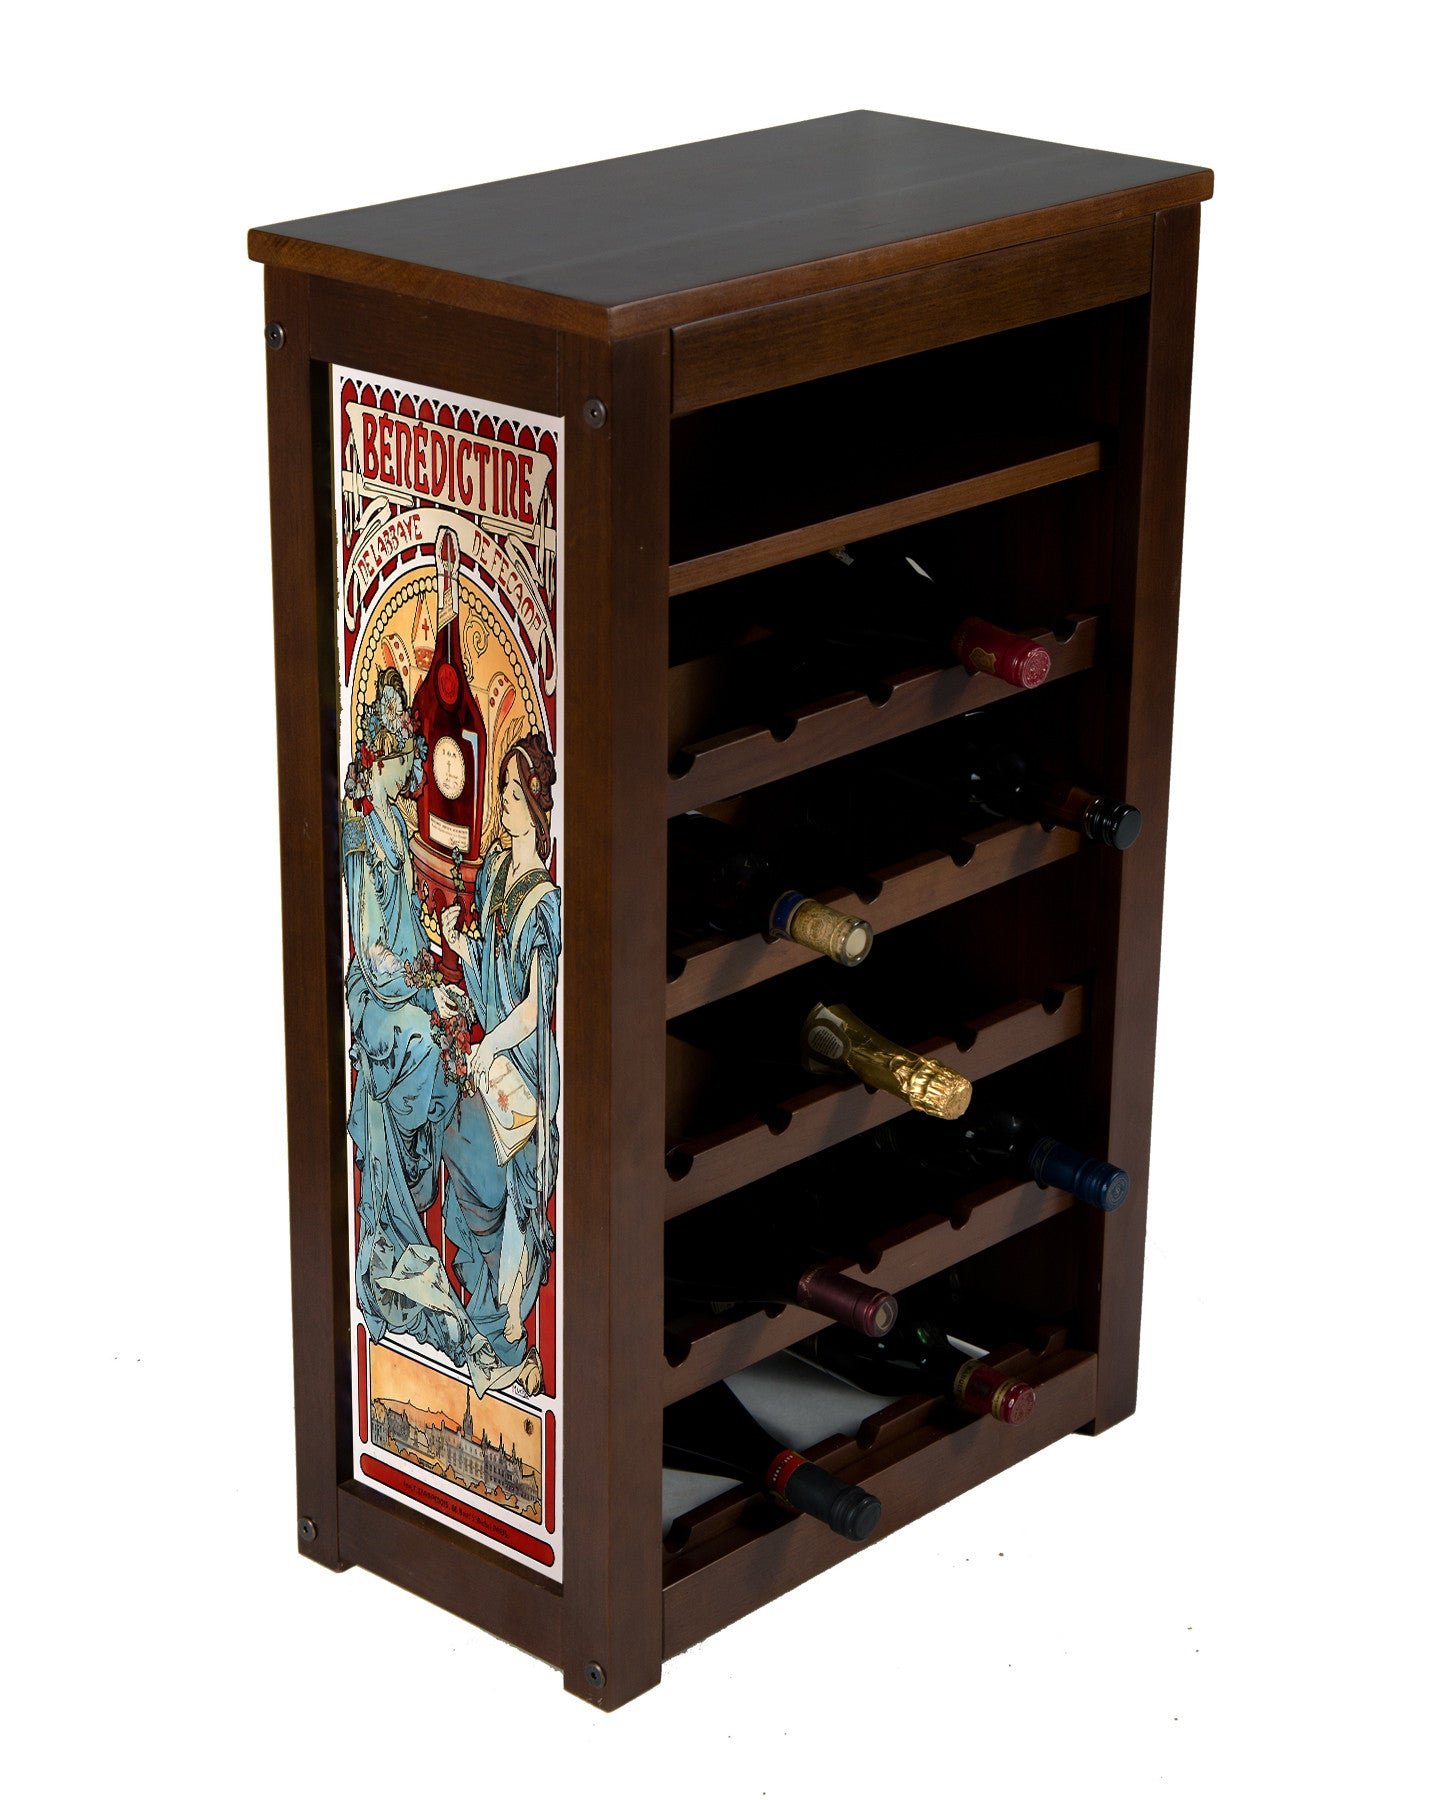 Benedictine liquor Cabinet-25 Bottle with shelf by Alphonse Mucha